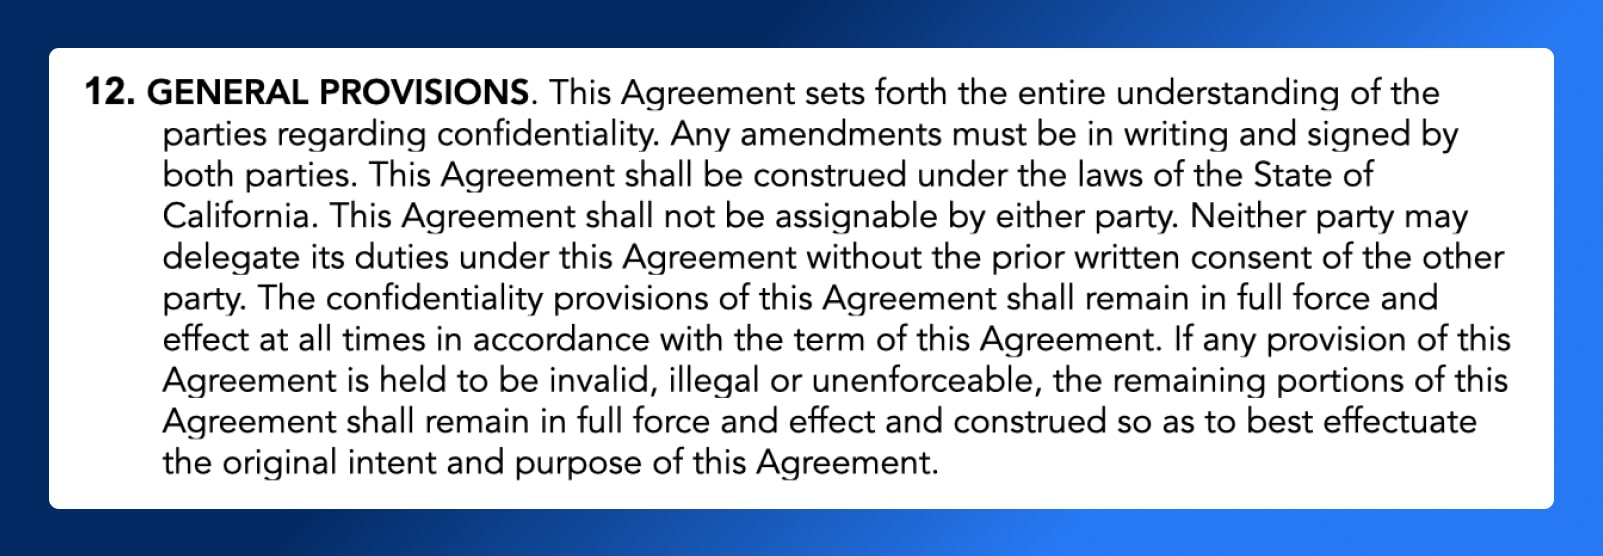 Non Disclosure Agreement - General Provisions - Wrapbook